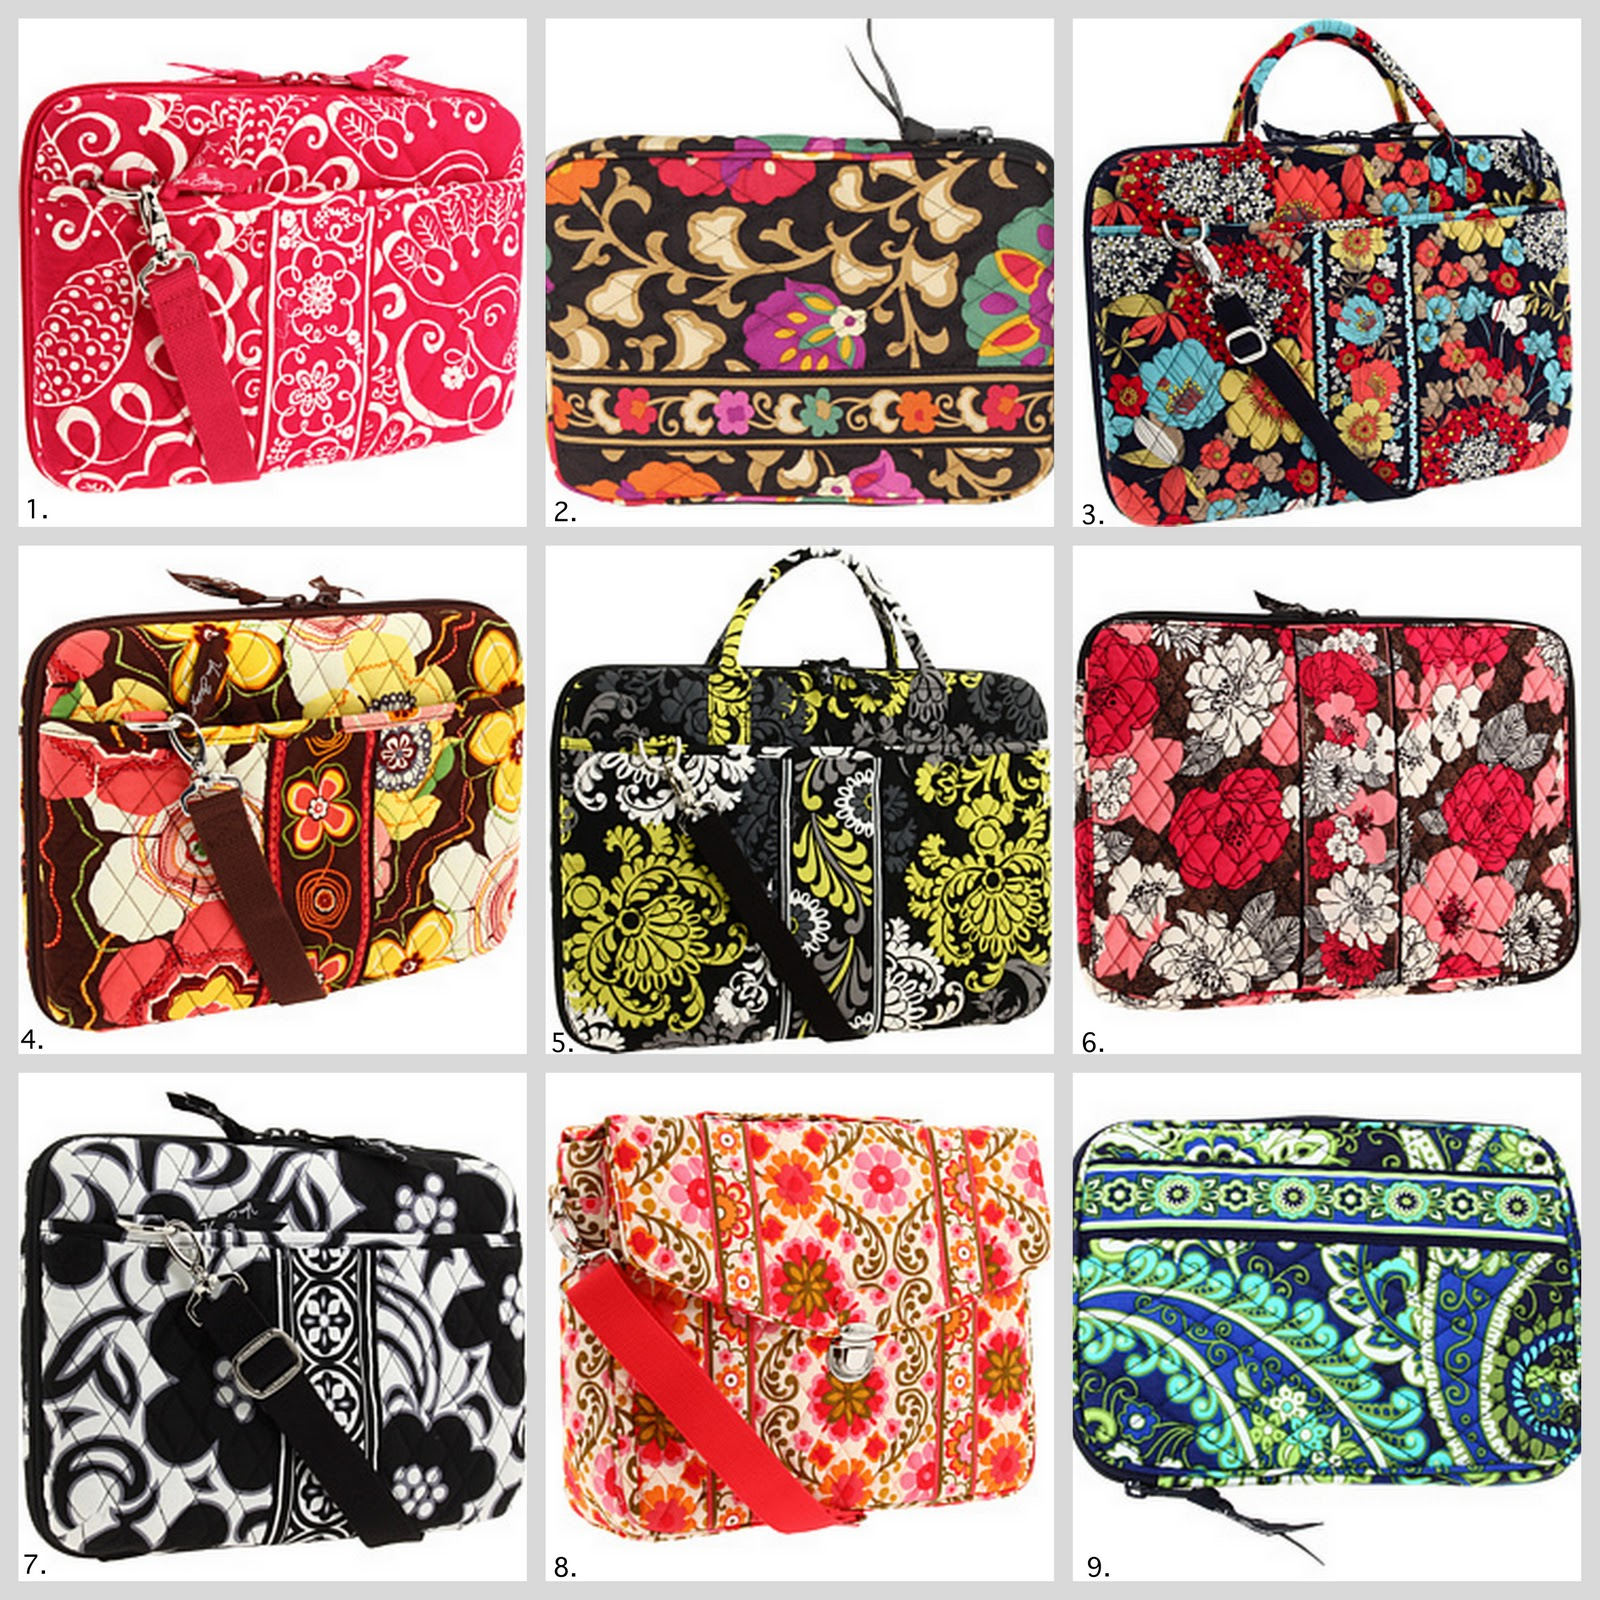 Prettily Patterned On The Outside With A Padded Interior Lining And Safety Straps Vera Bradley Laptop Bags Are Designed To Protect Your Favourite Gadget